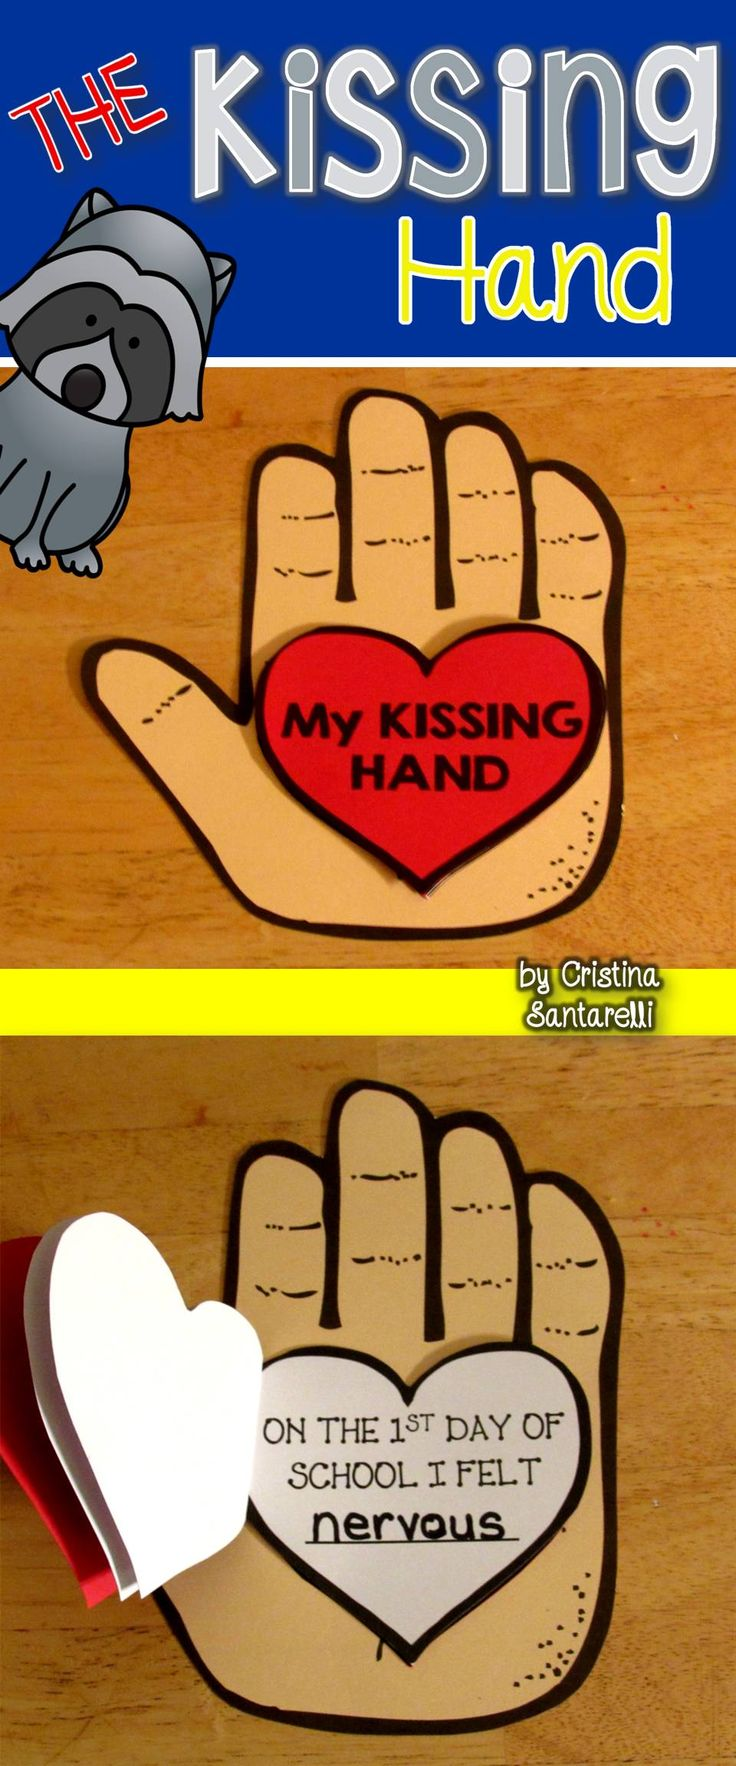 The Kissing Hand!                                                                                                                                                     More